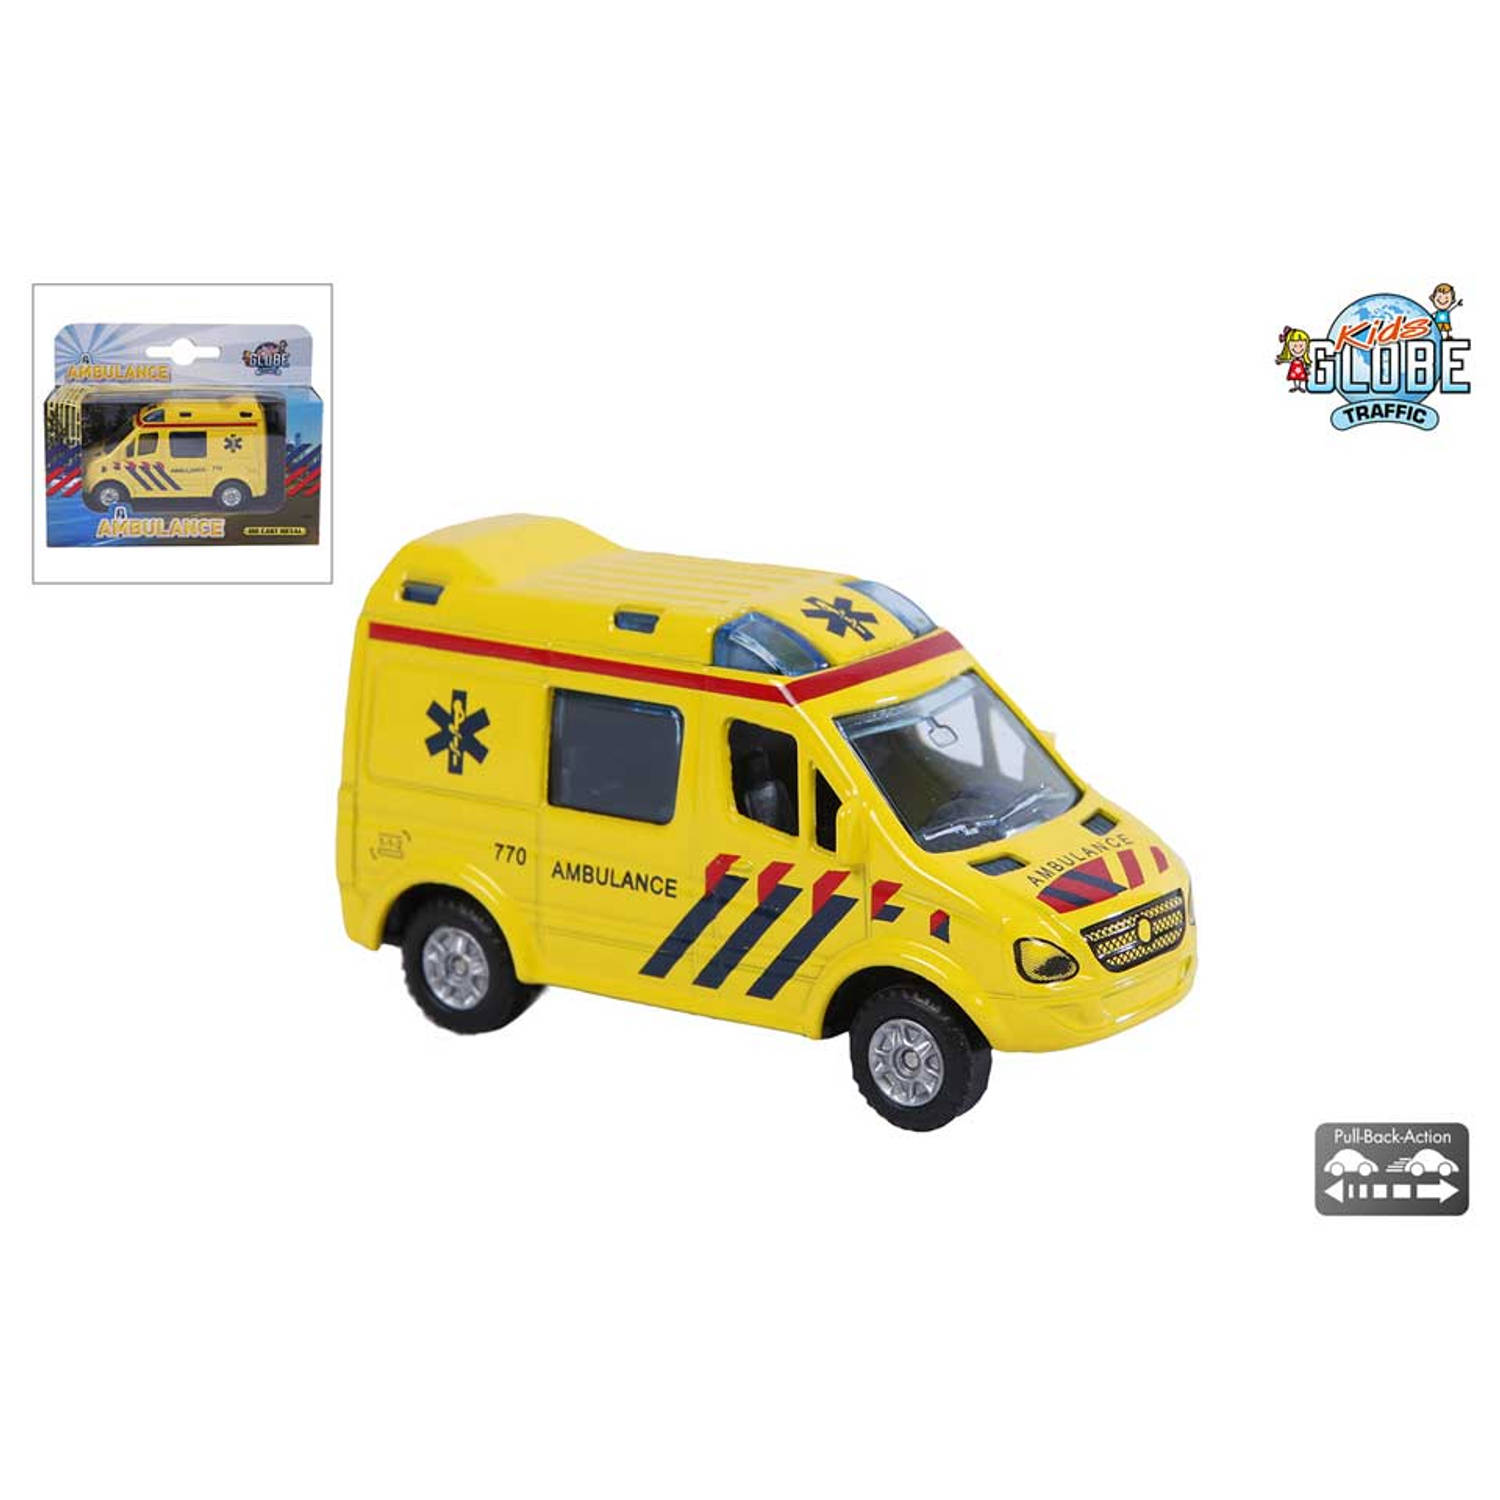 Kids Globe Traffic die cast ambulance